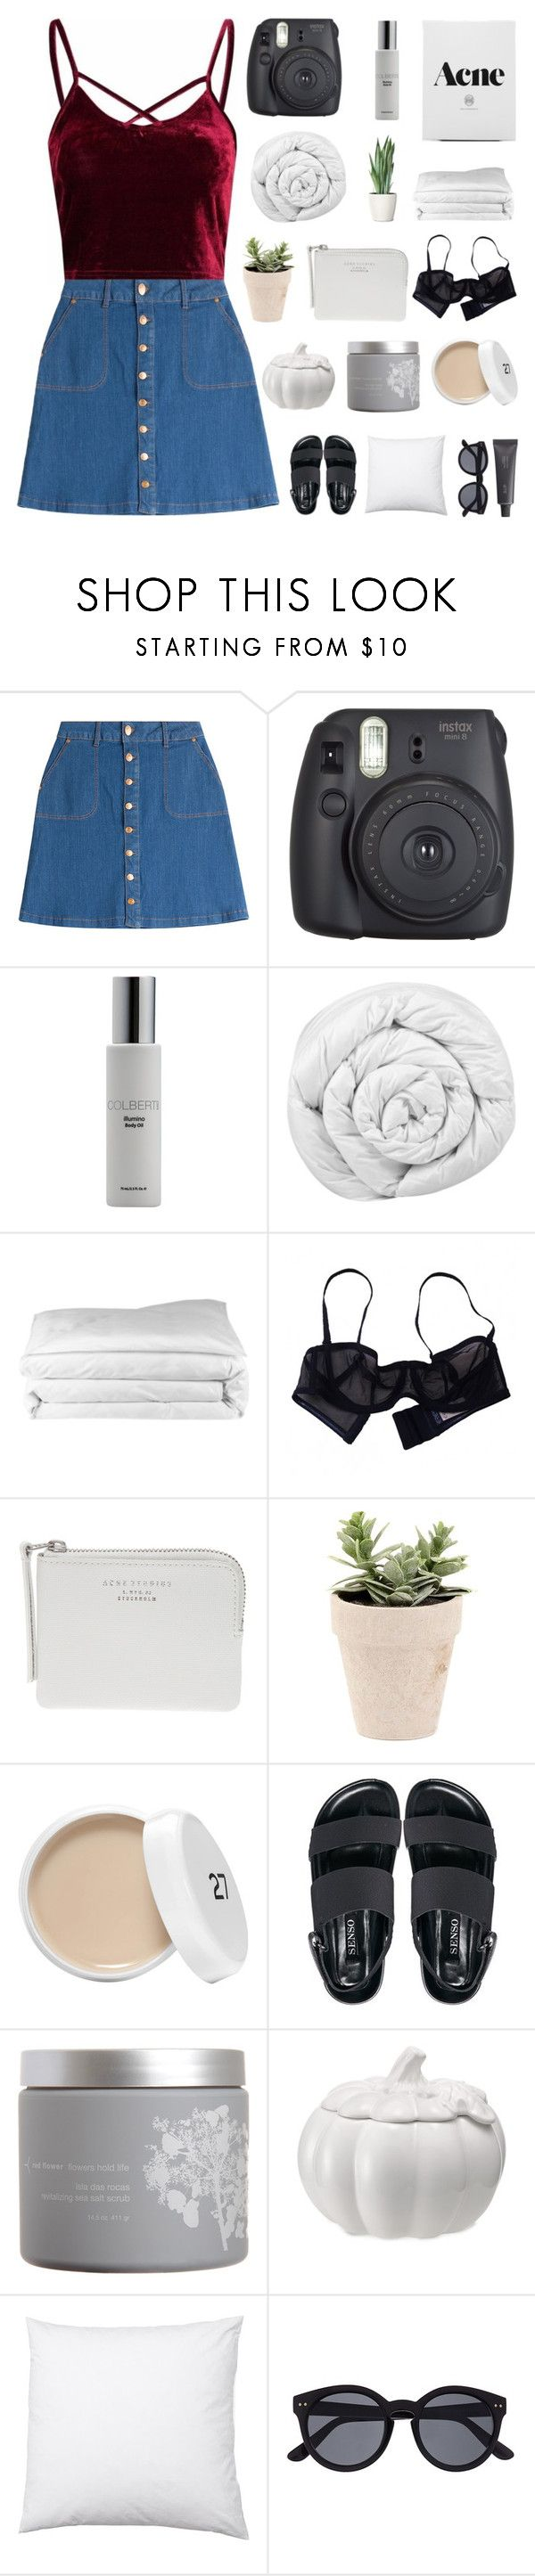 """""""SO IN LOVE THAT YOU ACT INSANE"""" by s-erene ❤ liked on Polyvore featuring HUGO, Fujifilm, Colbert MD, Brinkhaus, Frette, Eres, Acne Studios, Senso, red flower and Martha Stewart"""